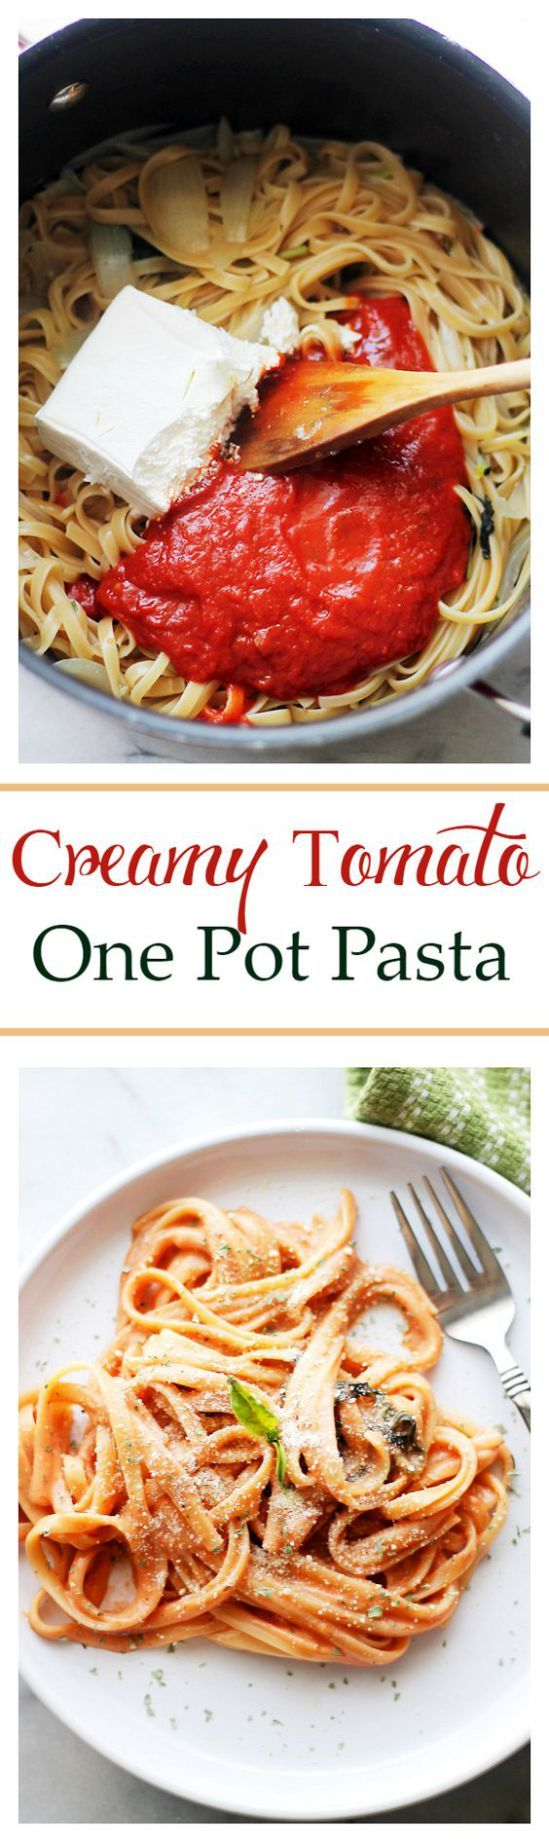 Creamy Tomato One Pot Pasta Recipe - only 25 minutes to make! | Diethood - The Best Easy One Pot Pasta Family Dinner Recipes